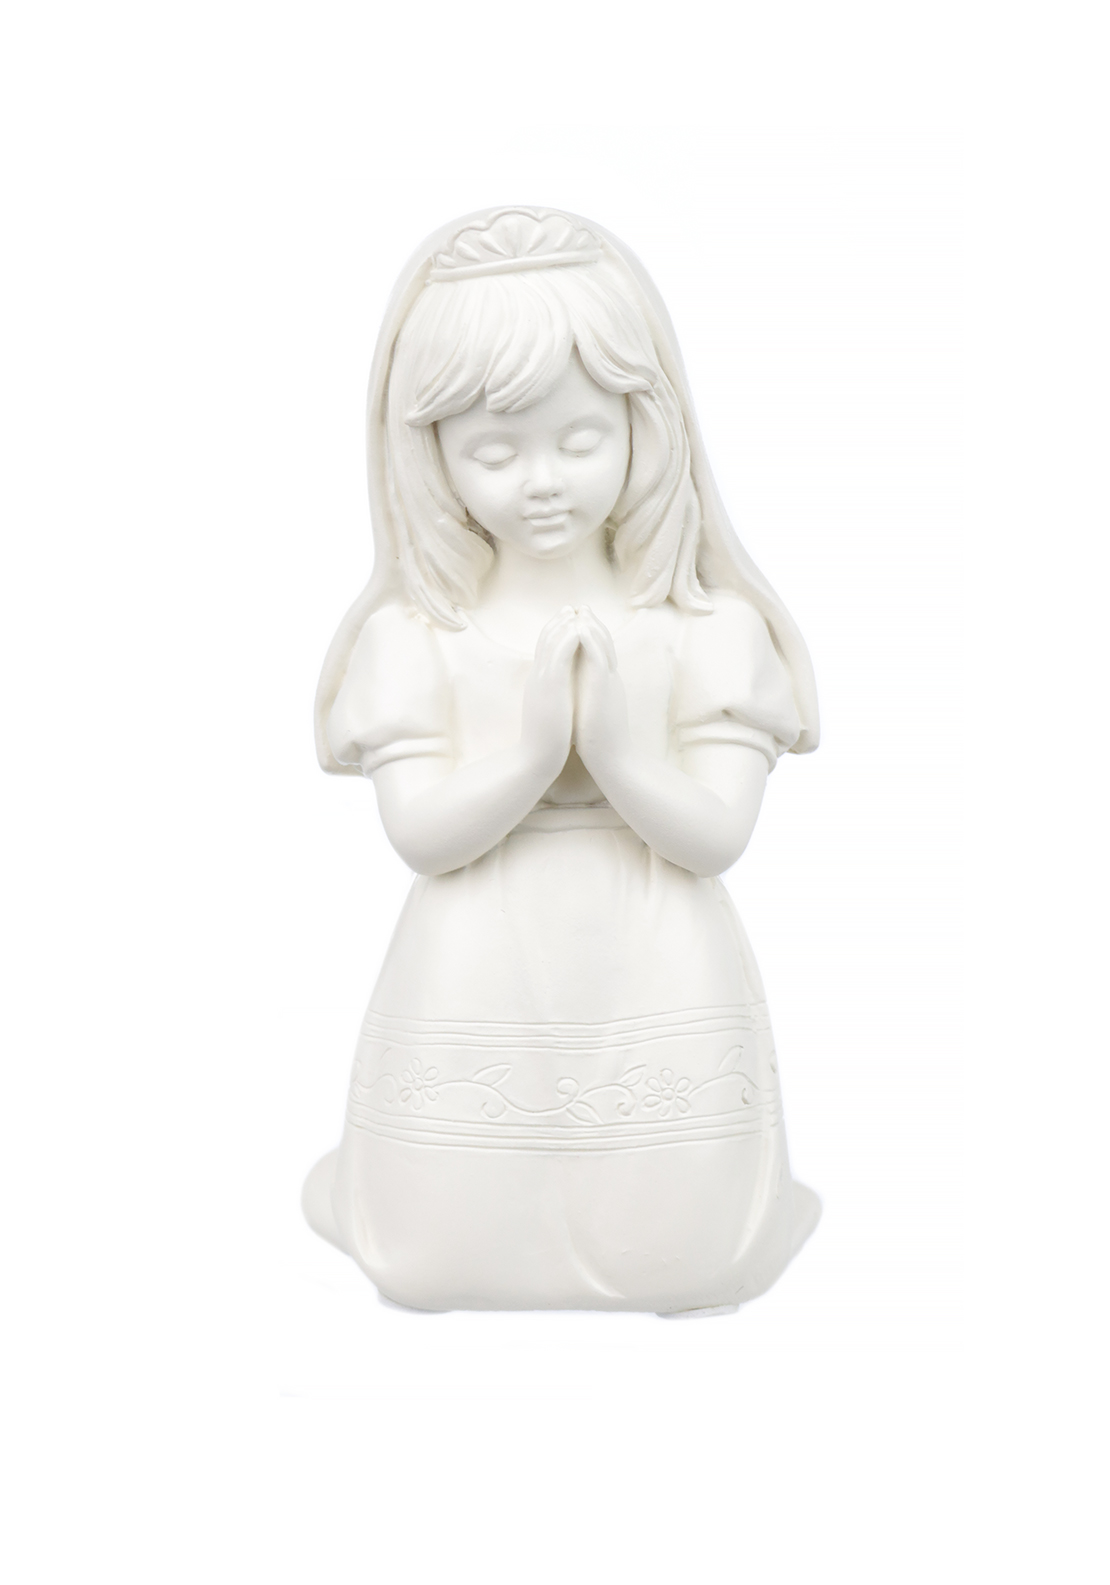 Widdop & Bingham Bless This Child Praying Figurine, Girl